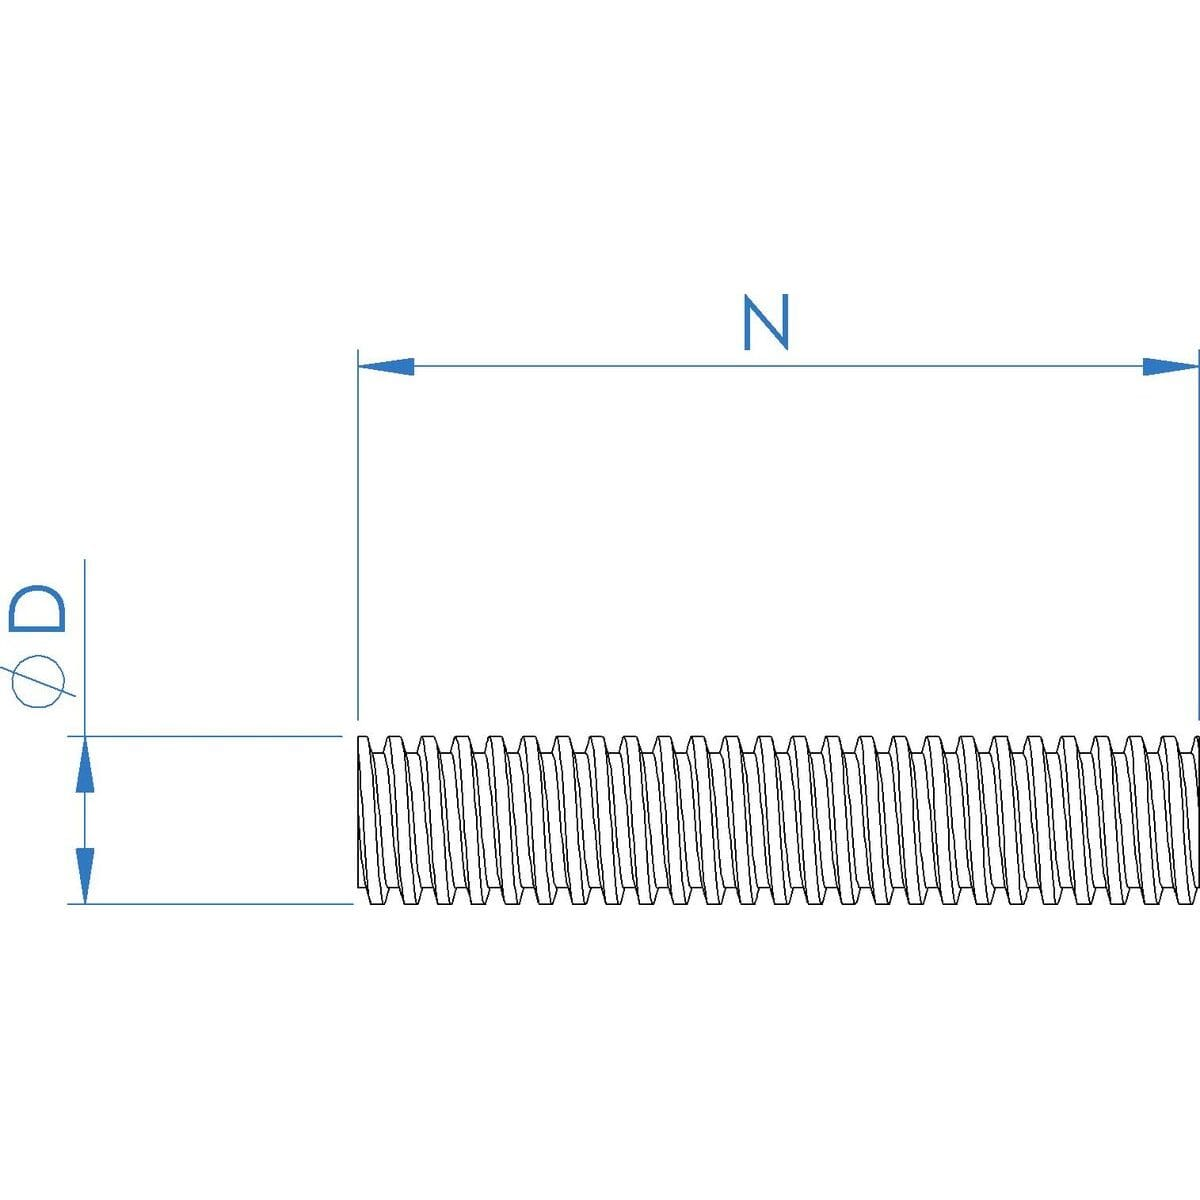 TR28x5 (28mm x 5mm Lead) x 260mm Trapezoidal Lead Screws - Marine Stainless Steel (A4) Drawing